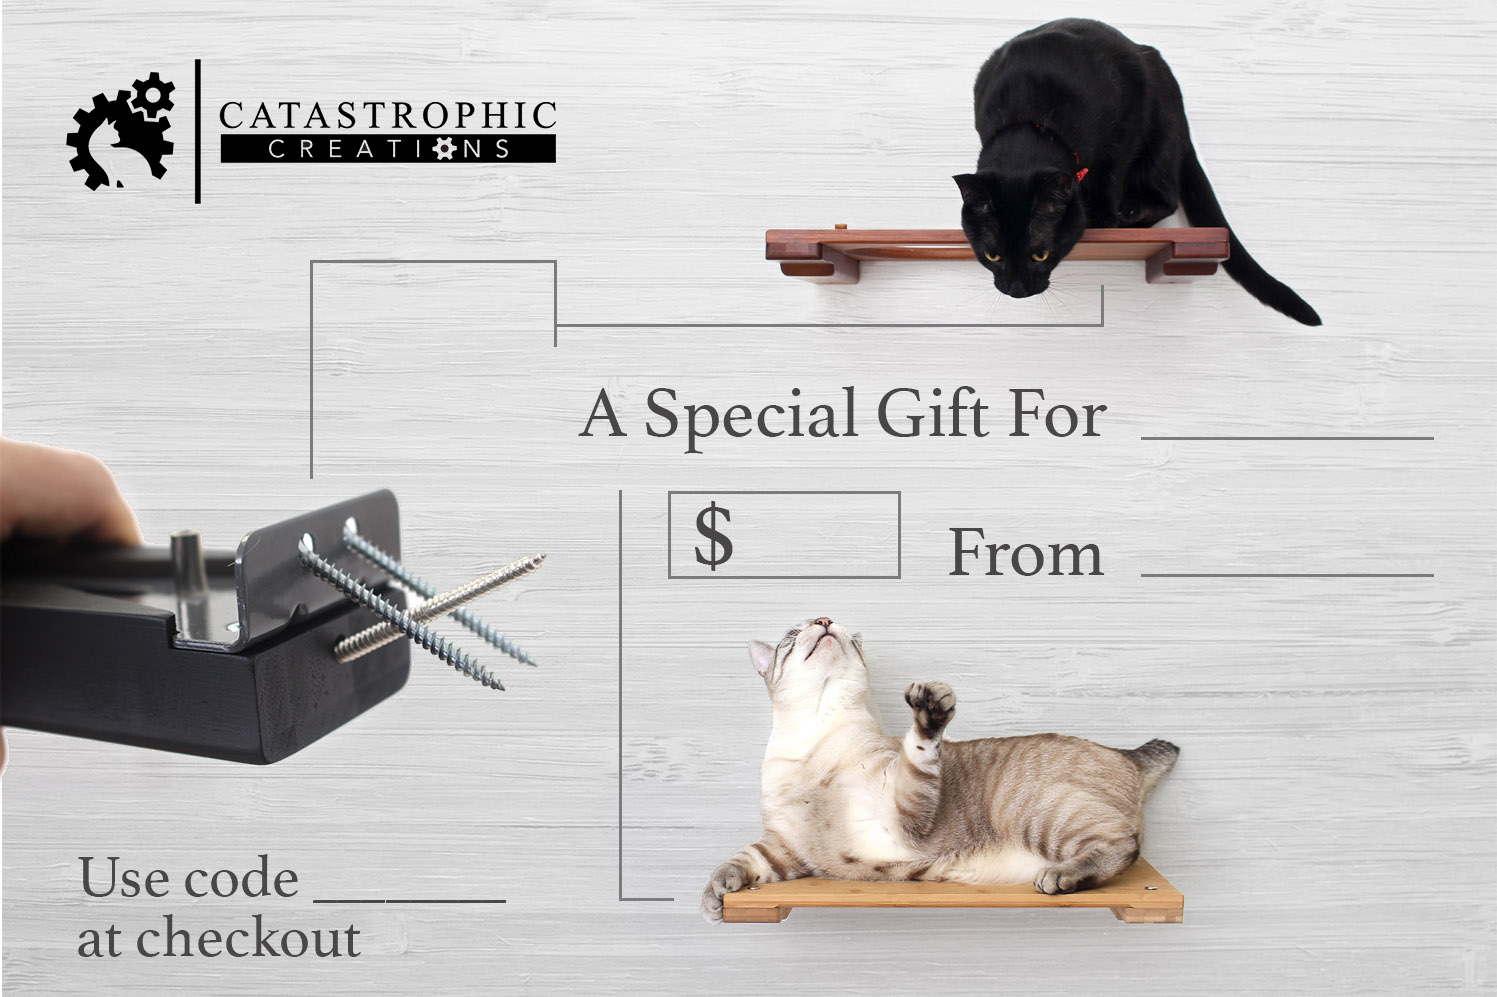 This image includes one cat relaxing on a Cat Shelf, another leaning over an Escape Hatch, a close up of our mounting plank, and the Catastrophic Creation logo.